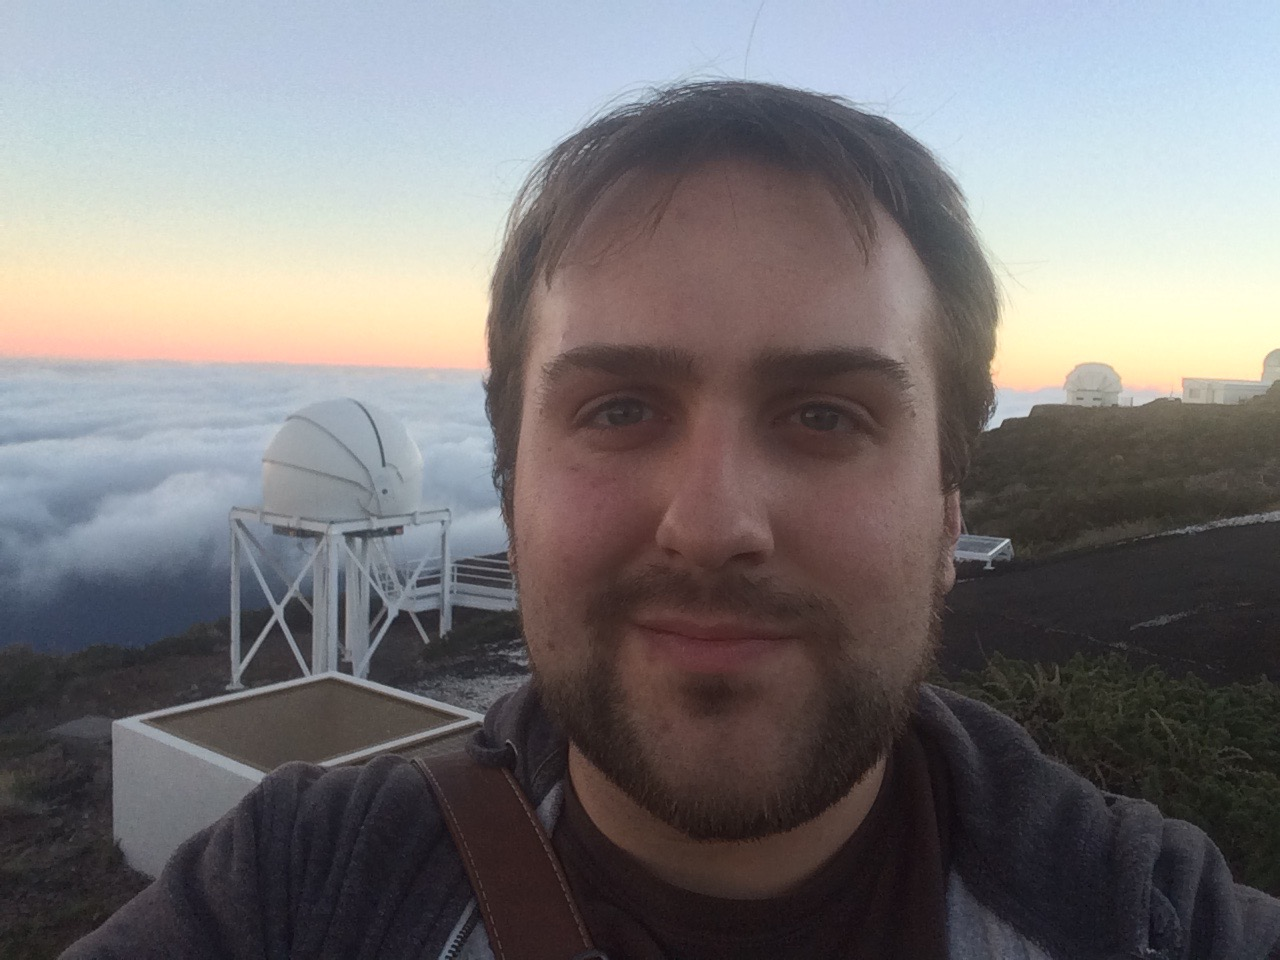 Stood by the William Herschel Telescope at the Roque de los Muchachos Observatory, La Palma as the Sun rises.